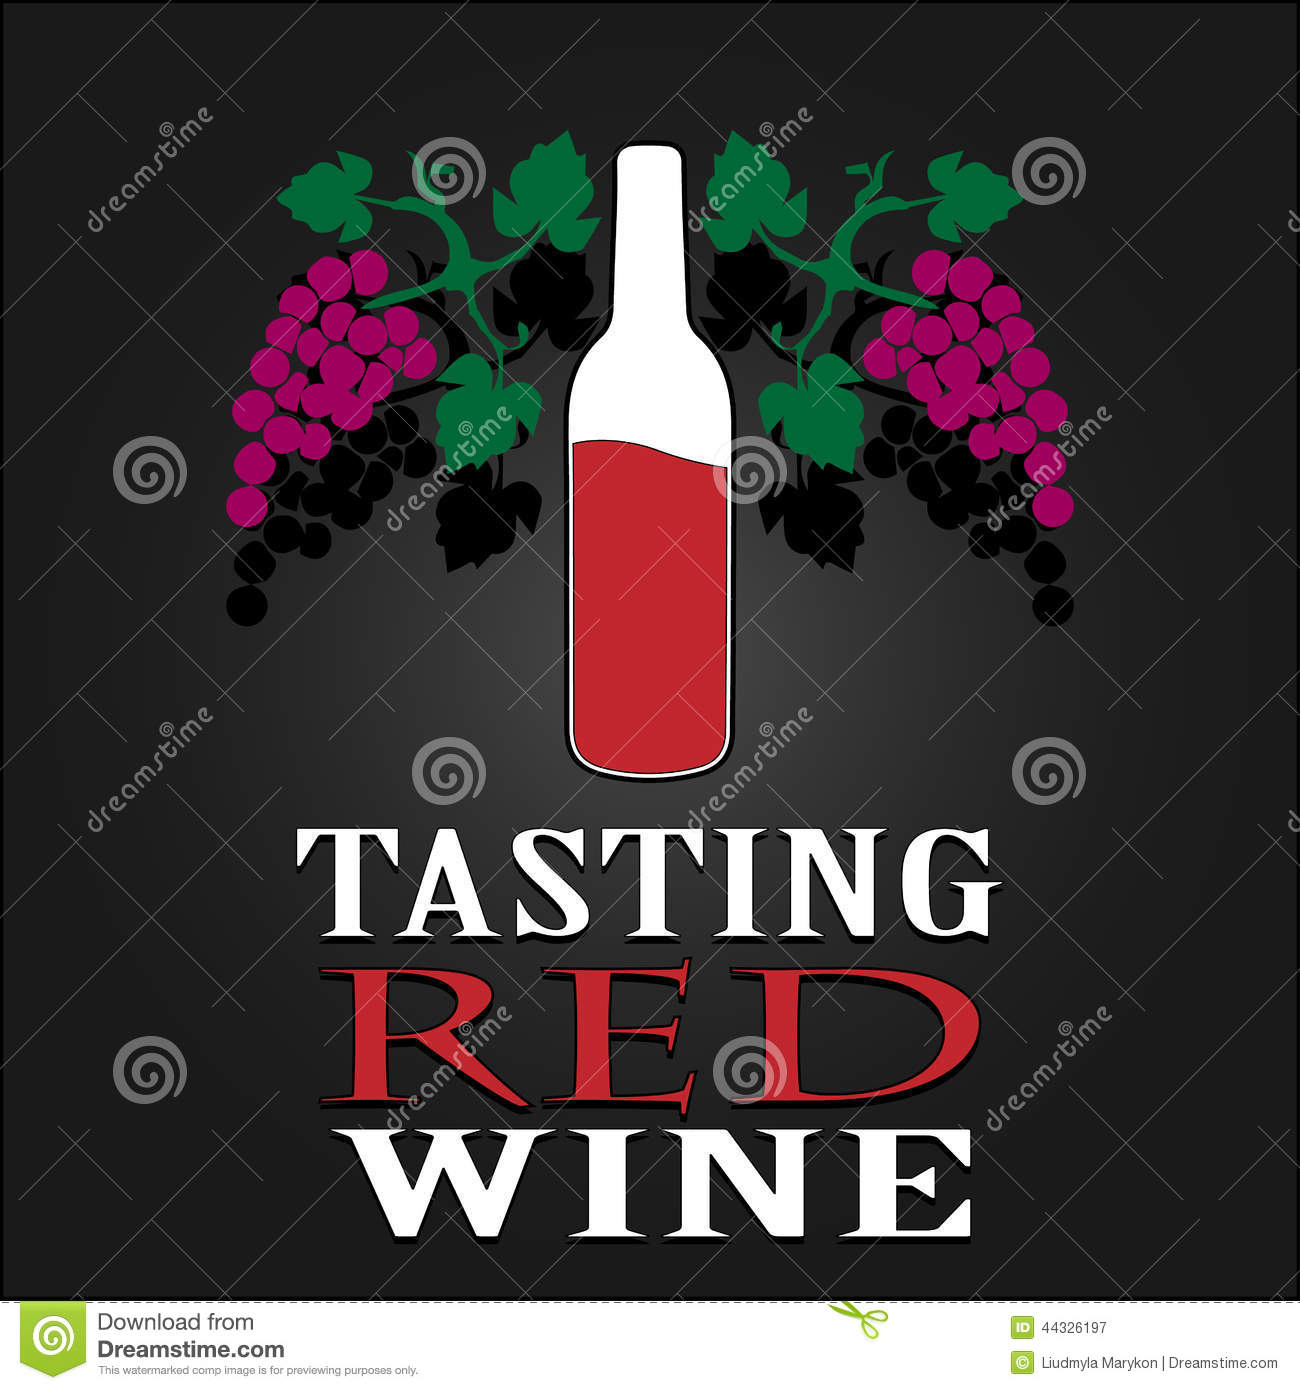 Tasting Red Wine Poster. Vector Illustration Stock Vector - Image ...